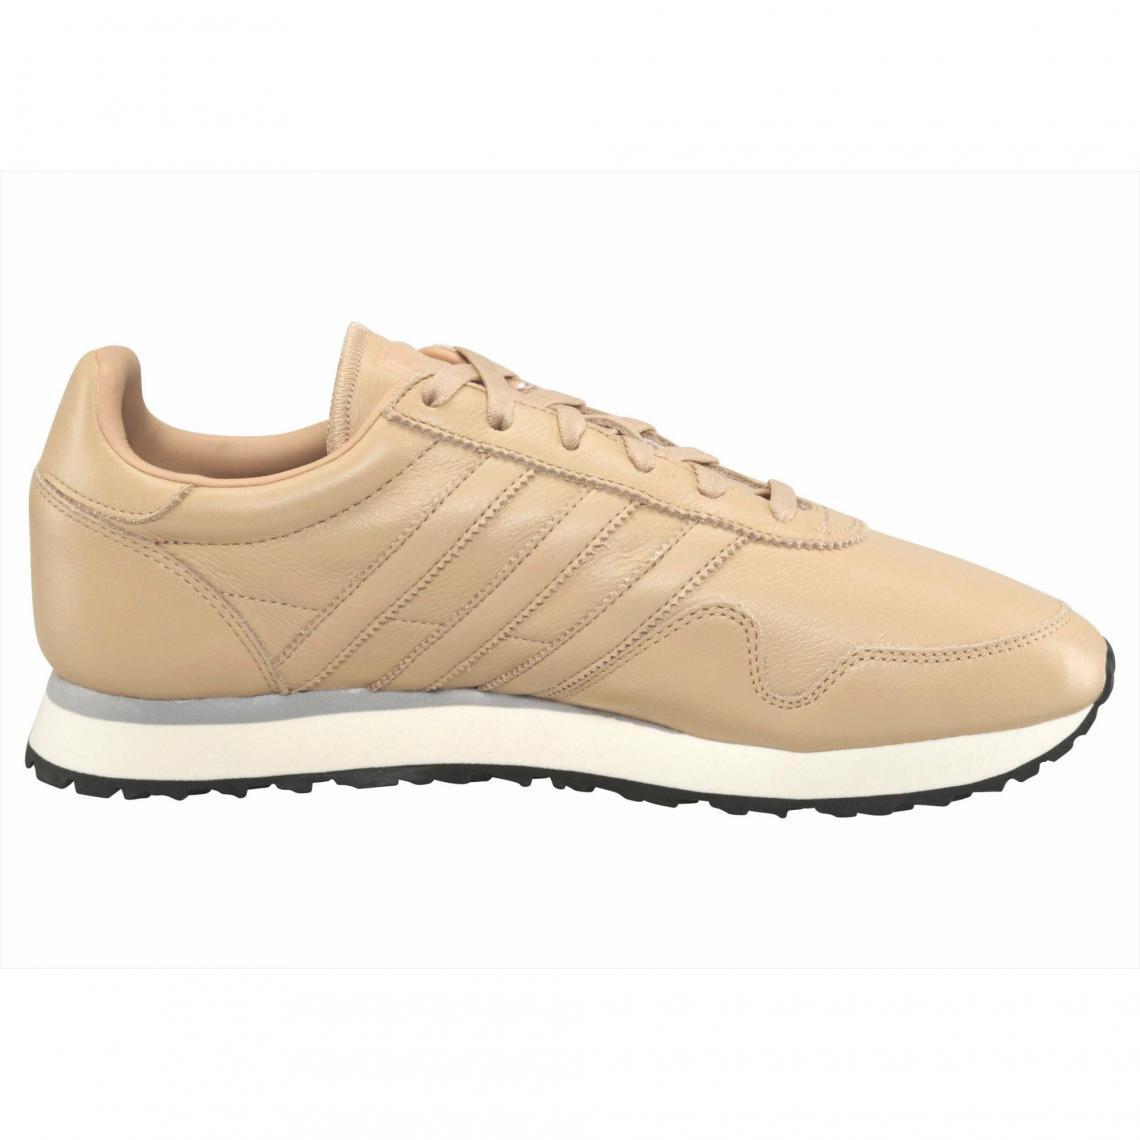 De Haven Homme Originals® 3suisses Chaussures Adidas Sport Sable HFqxwF67d